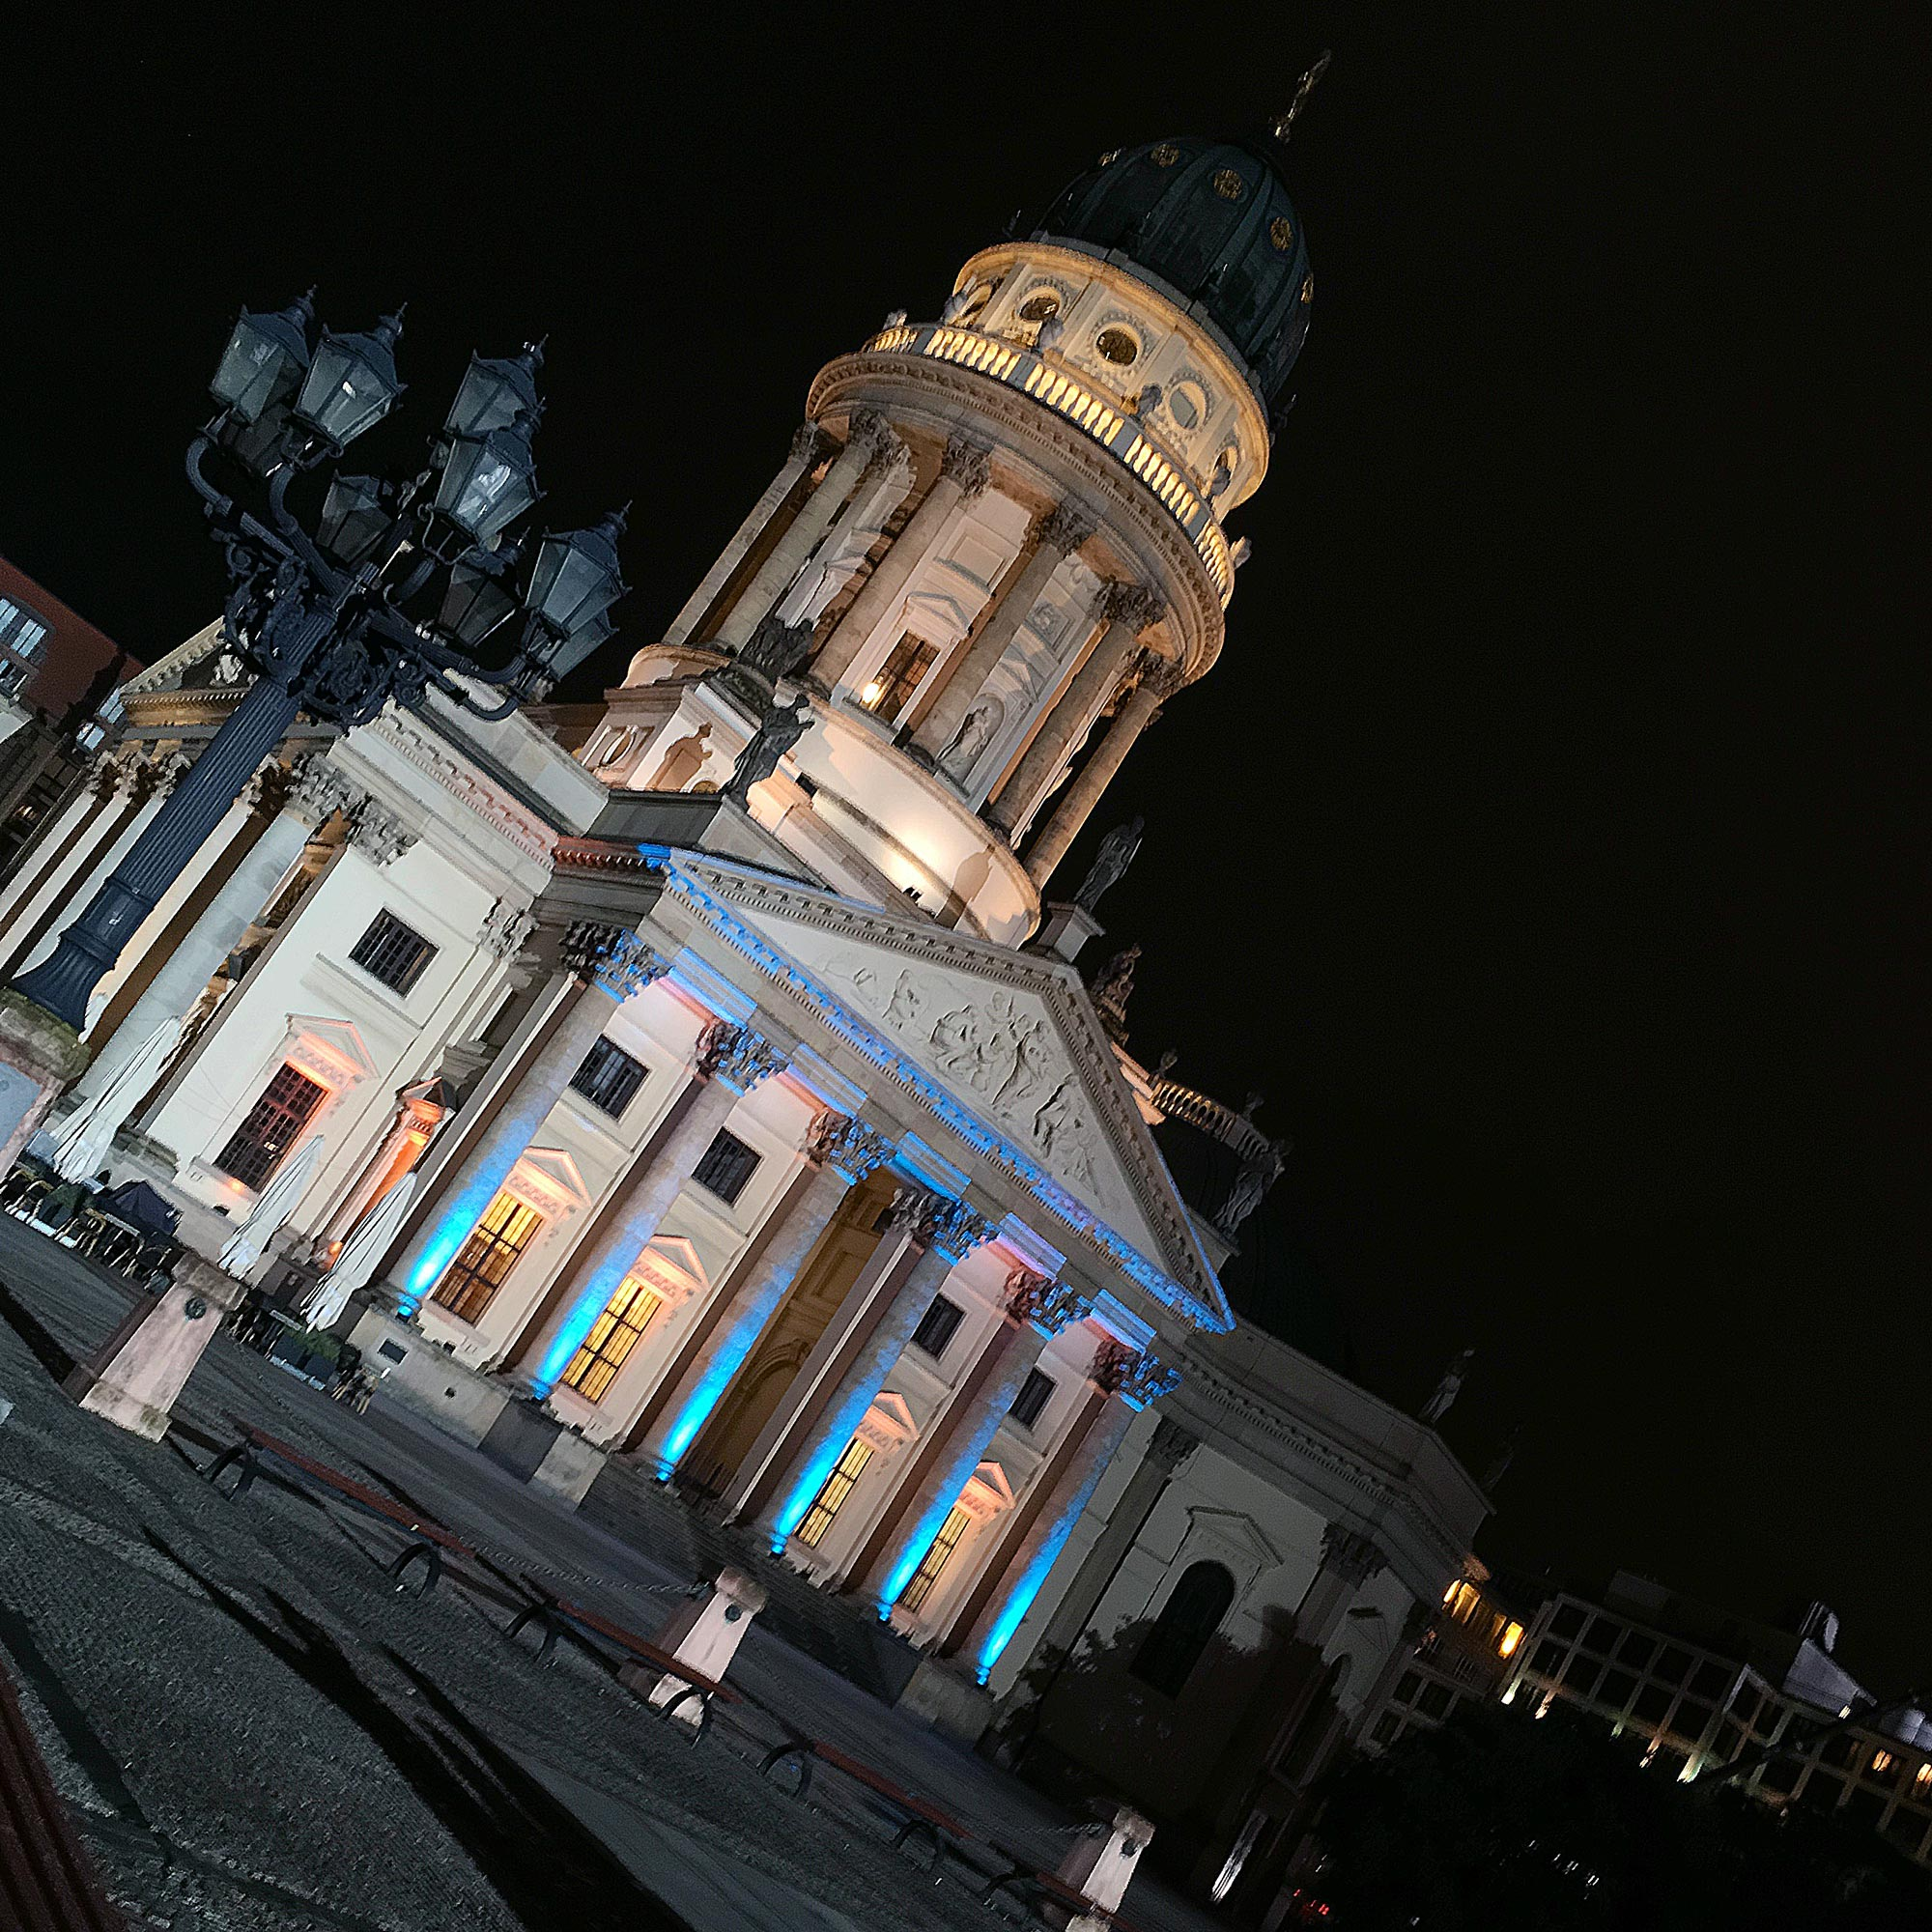 Festival of Lights 2016: Gendarmenmarkt